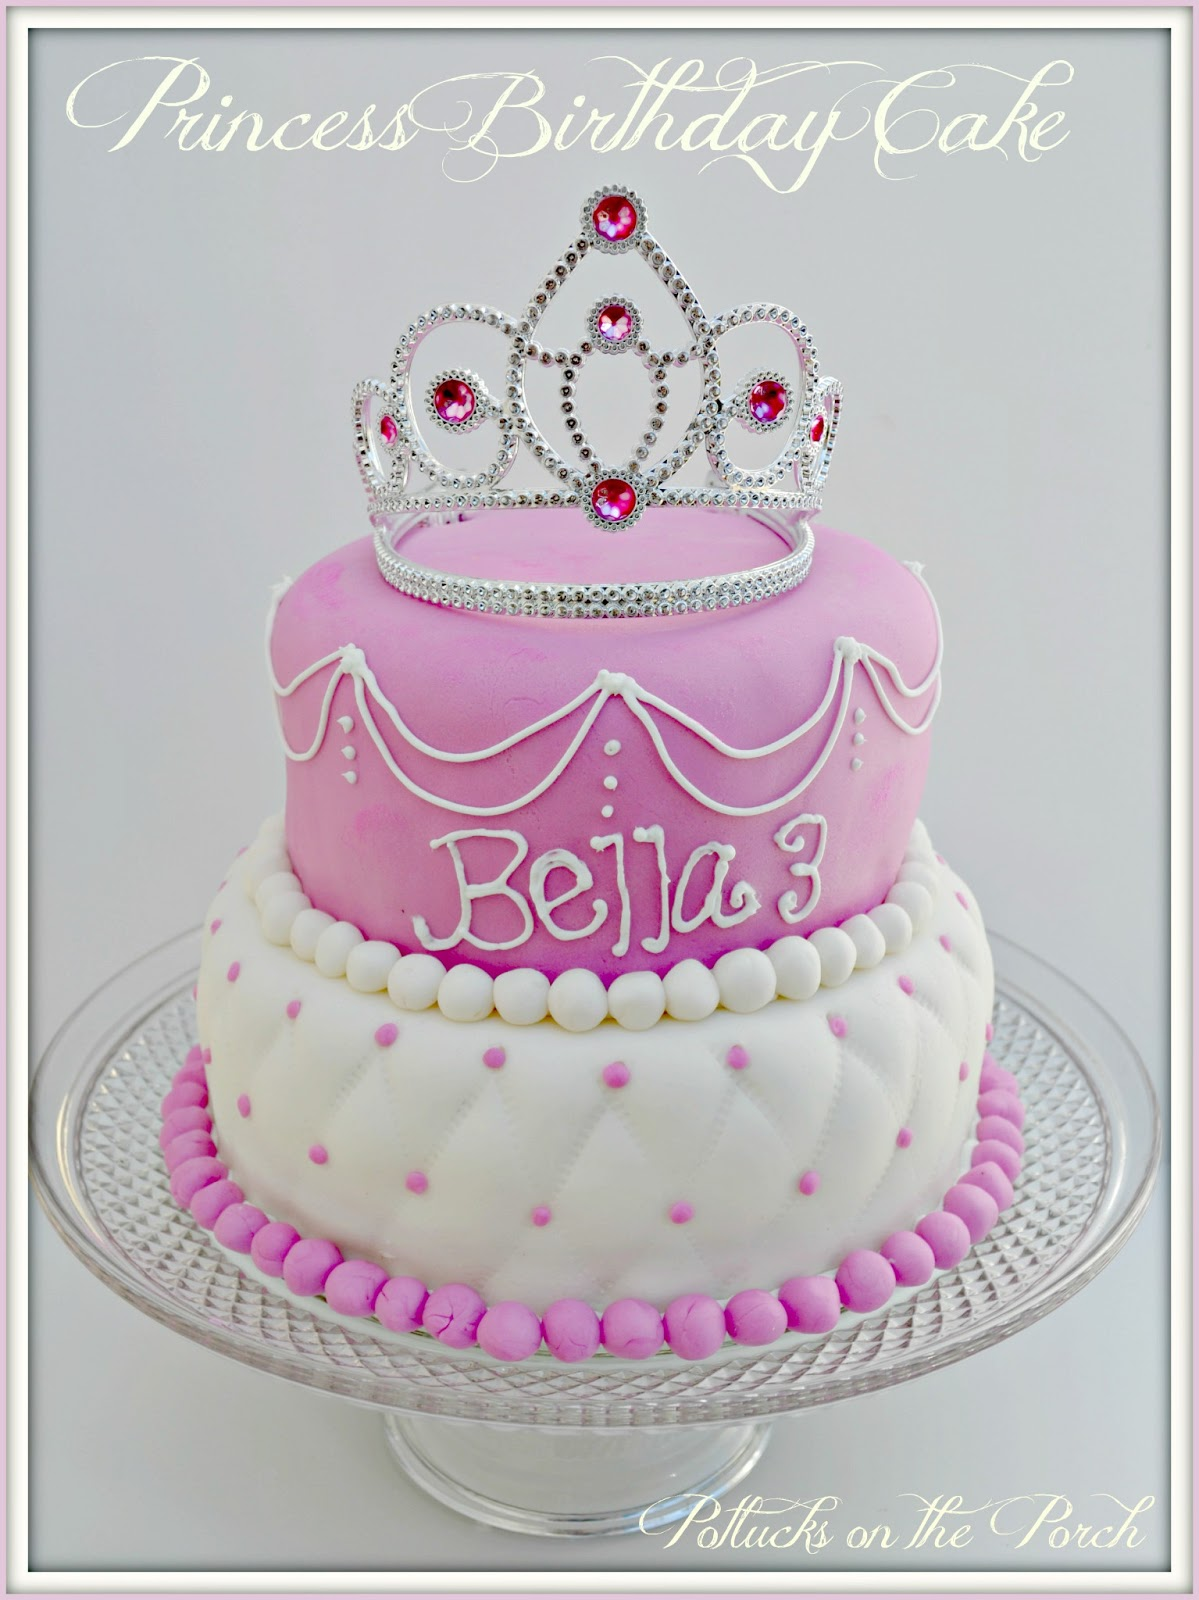 1st birthday ideas on pinterest princess cakes princess party and princess party supplies. Black Bedroom Furniture Sets. Home Design Ideas